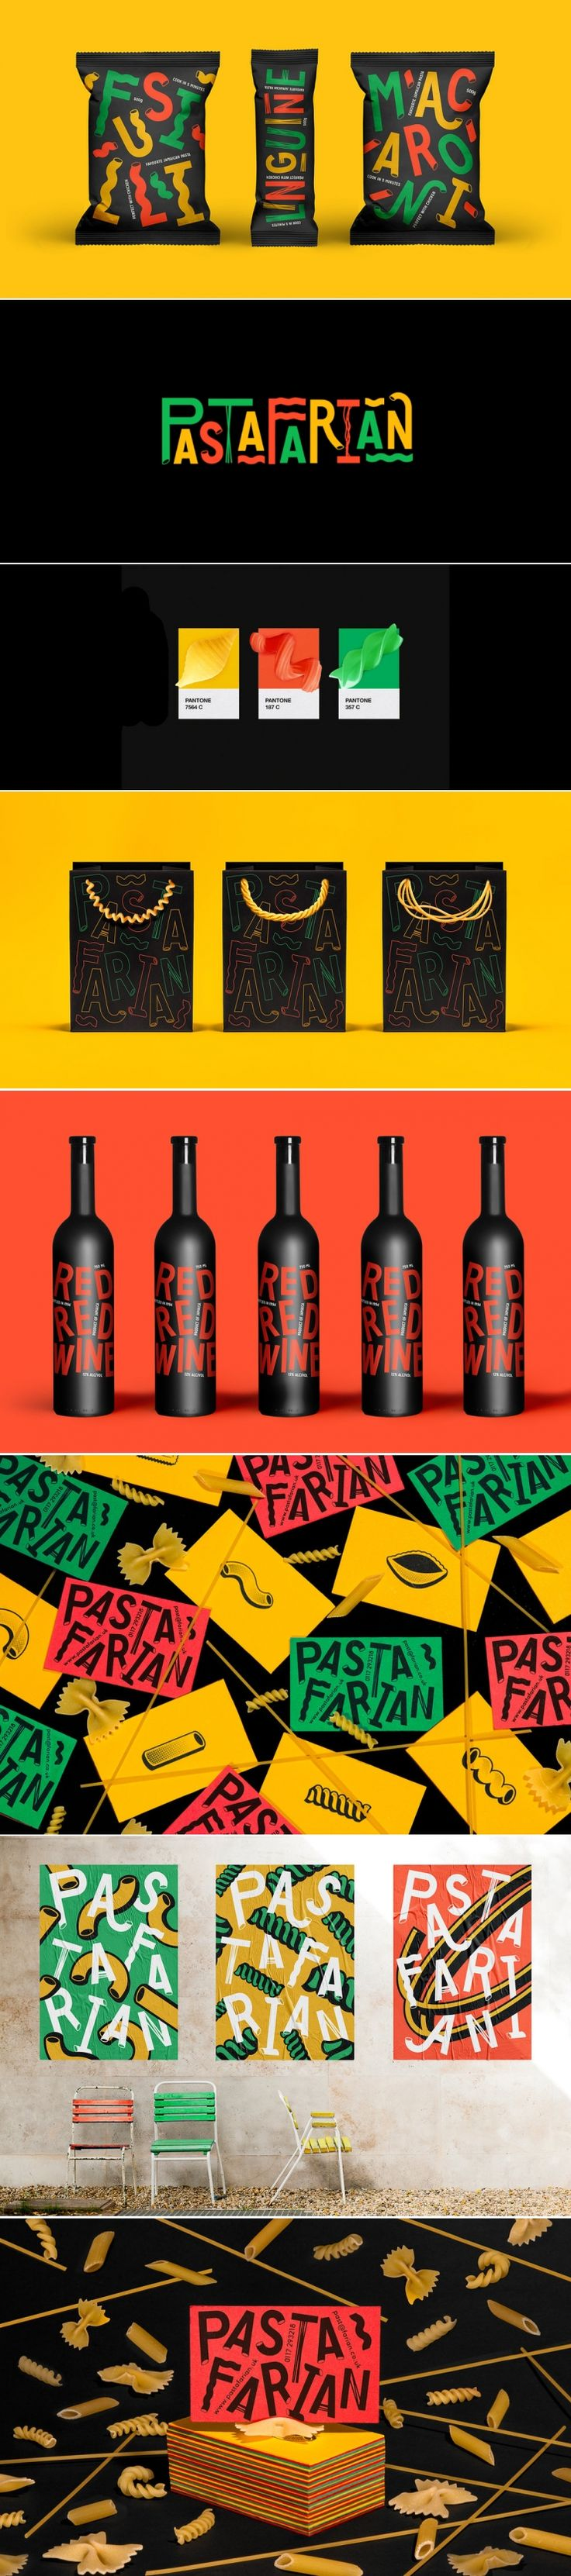 We Love This Fun Concept for Pasta Packaging and Branding — The Dieline   Packaging & Branding Design & Innovation News